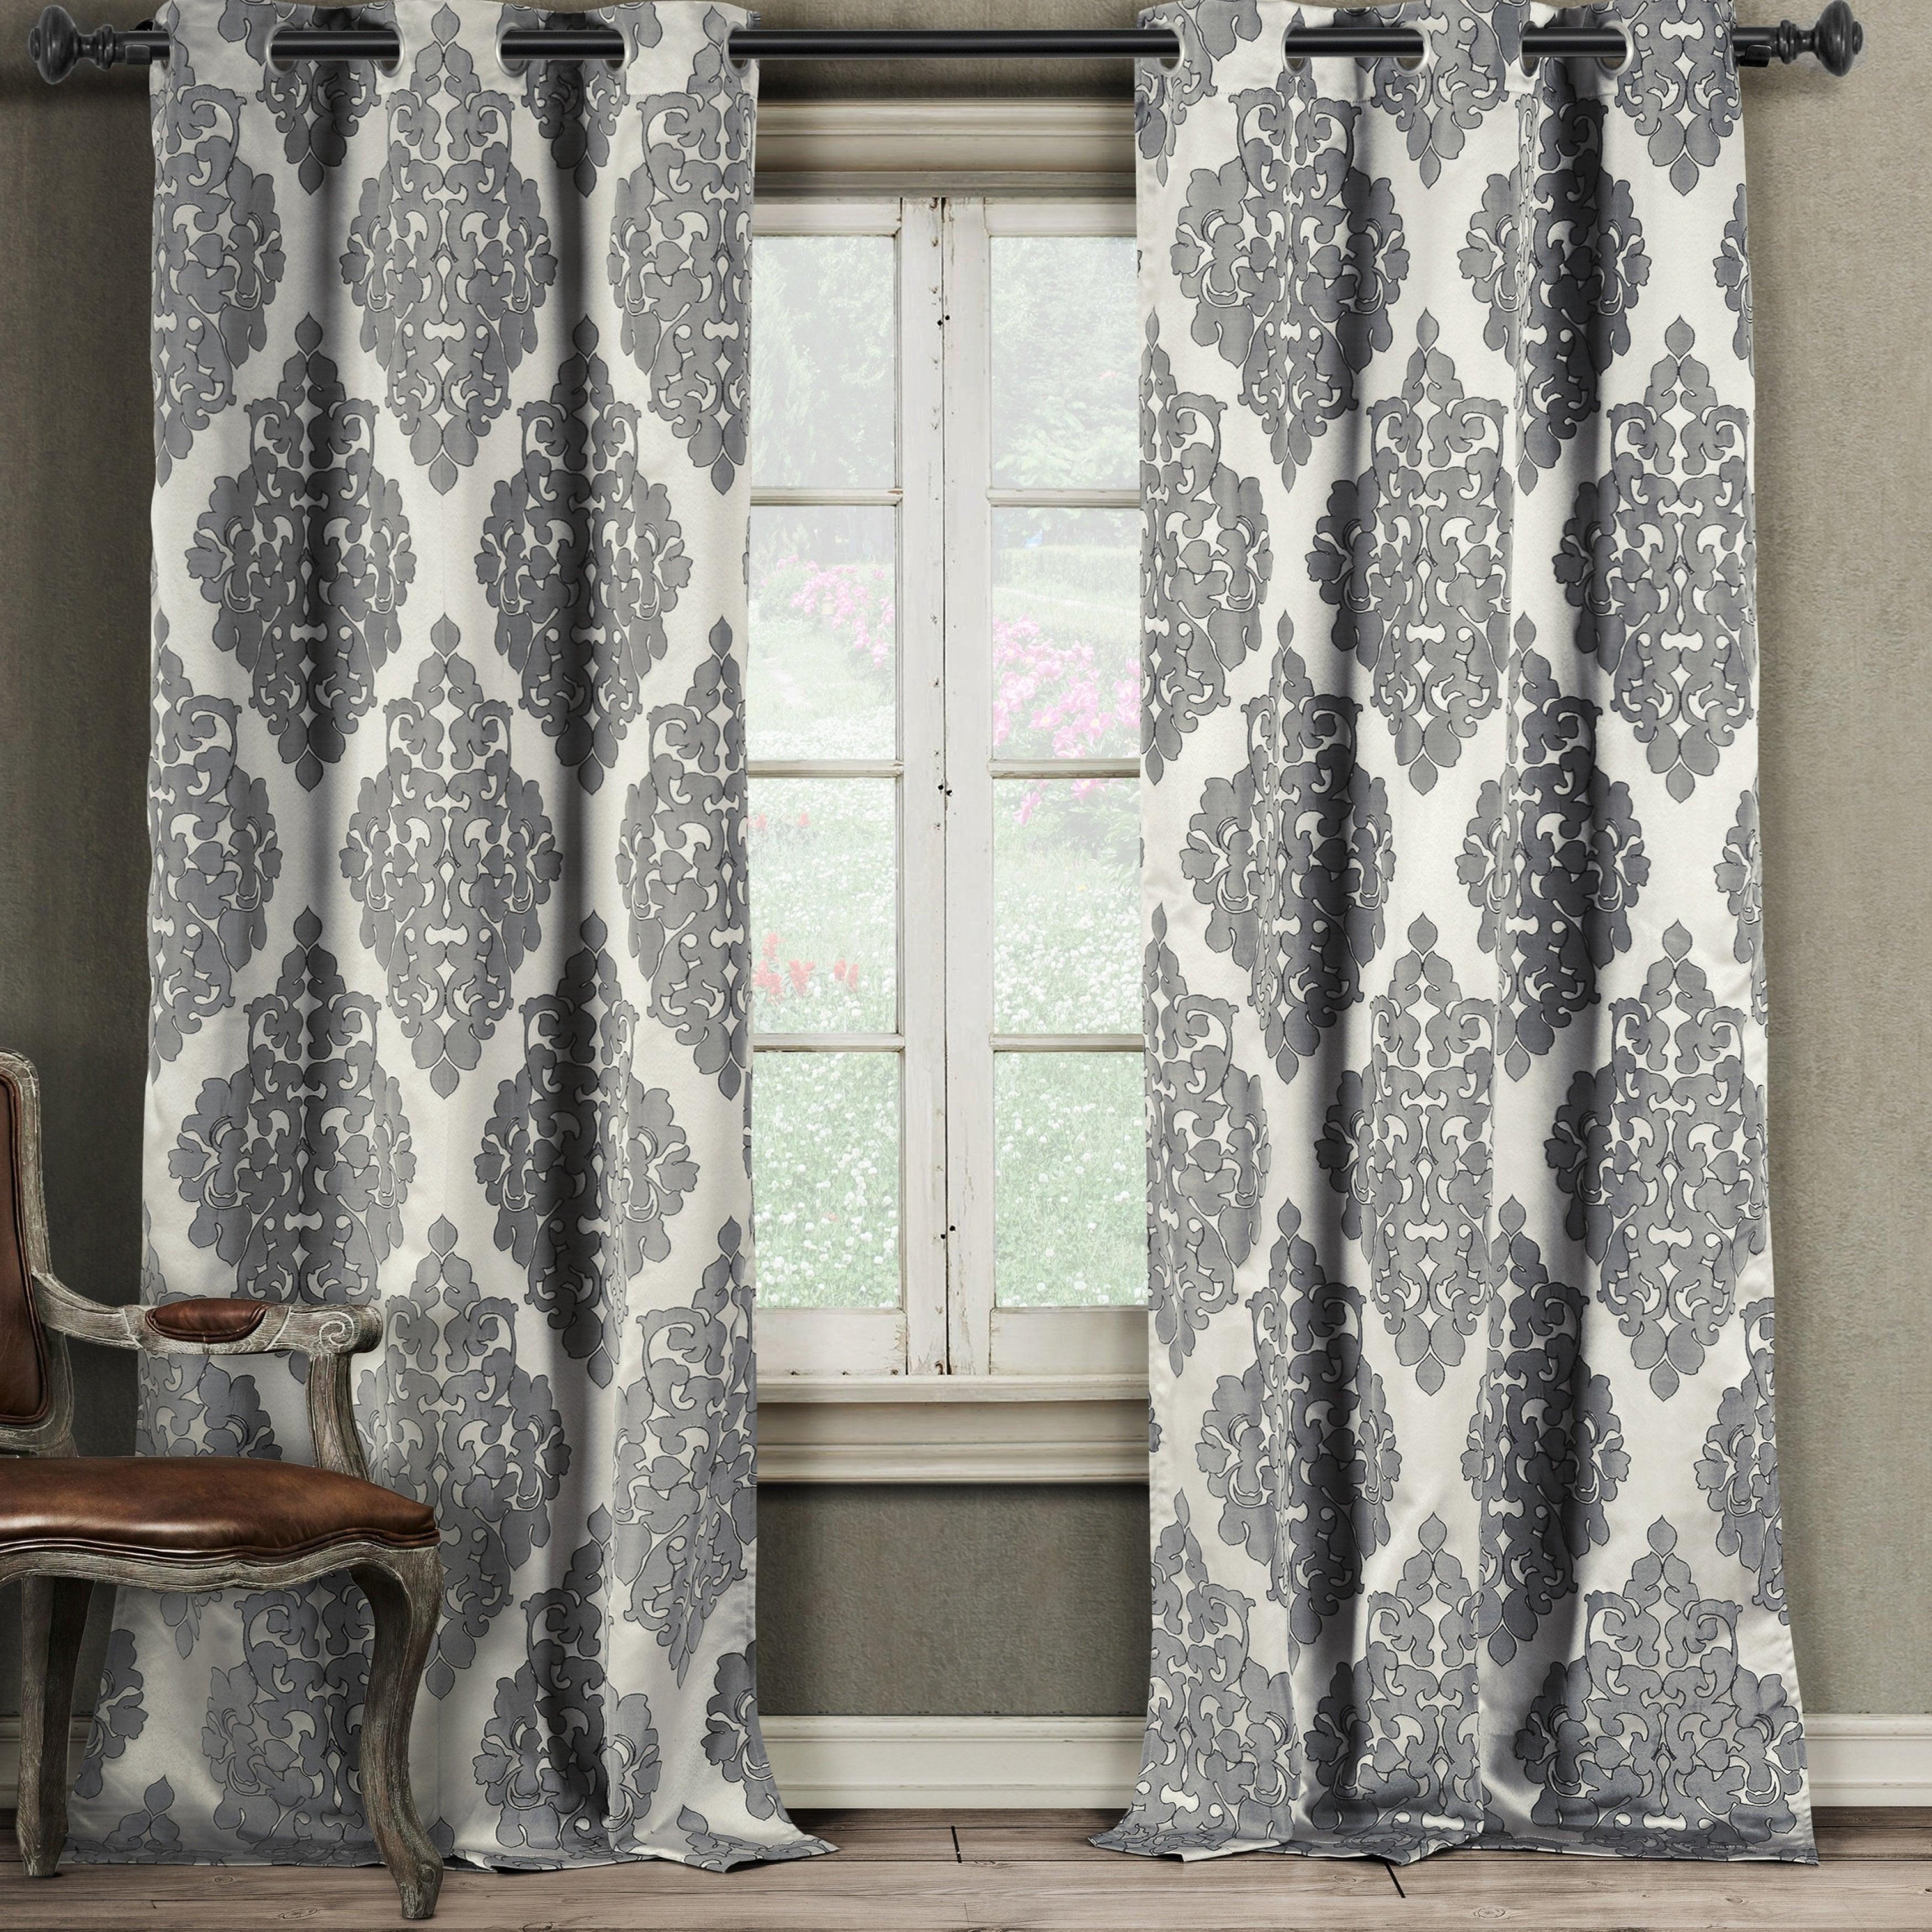 Catilie Grommet Window Curtain Panel Pair Set Of Two Intended For Pastel Damask Printed Room Darkening Grommet Window Curtain Panel Pairs (View 7 of 20)